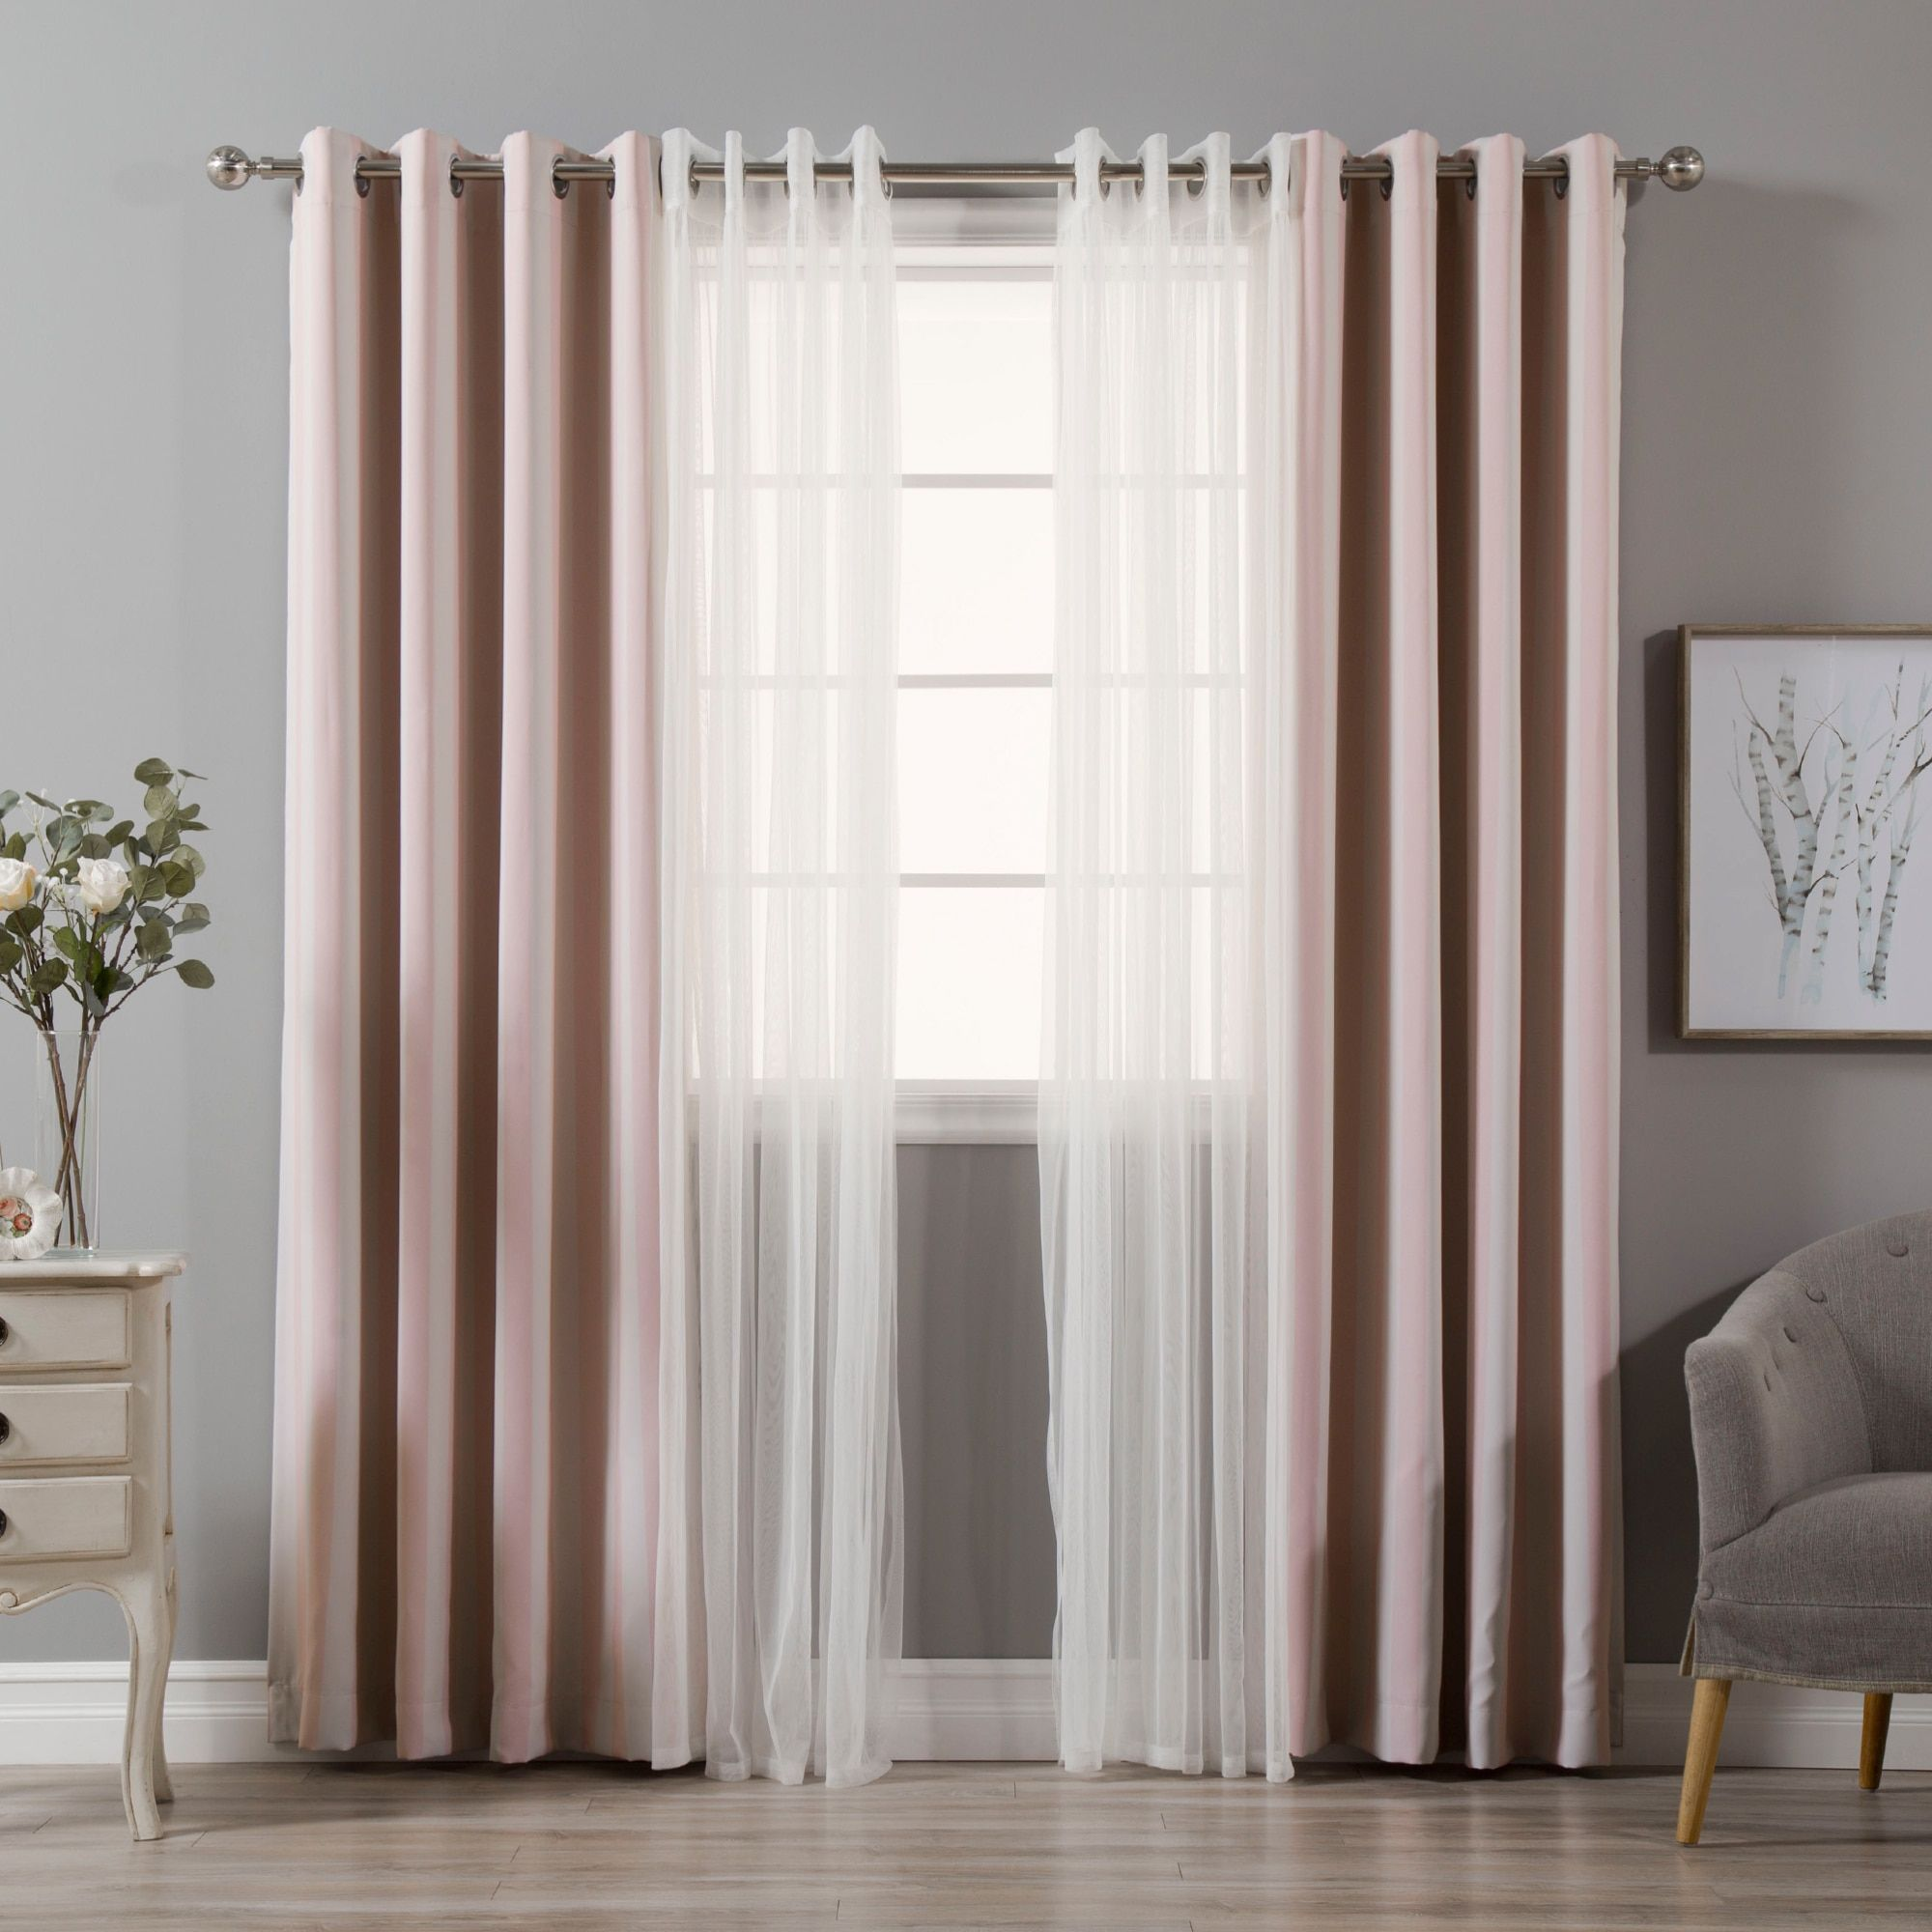 shower curtains curtain products home mist linen parachute washed garment chambray